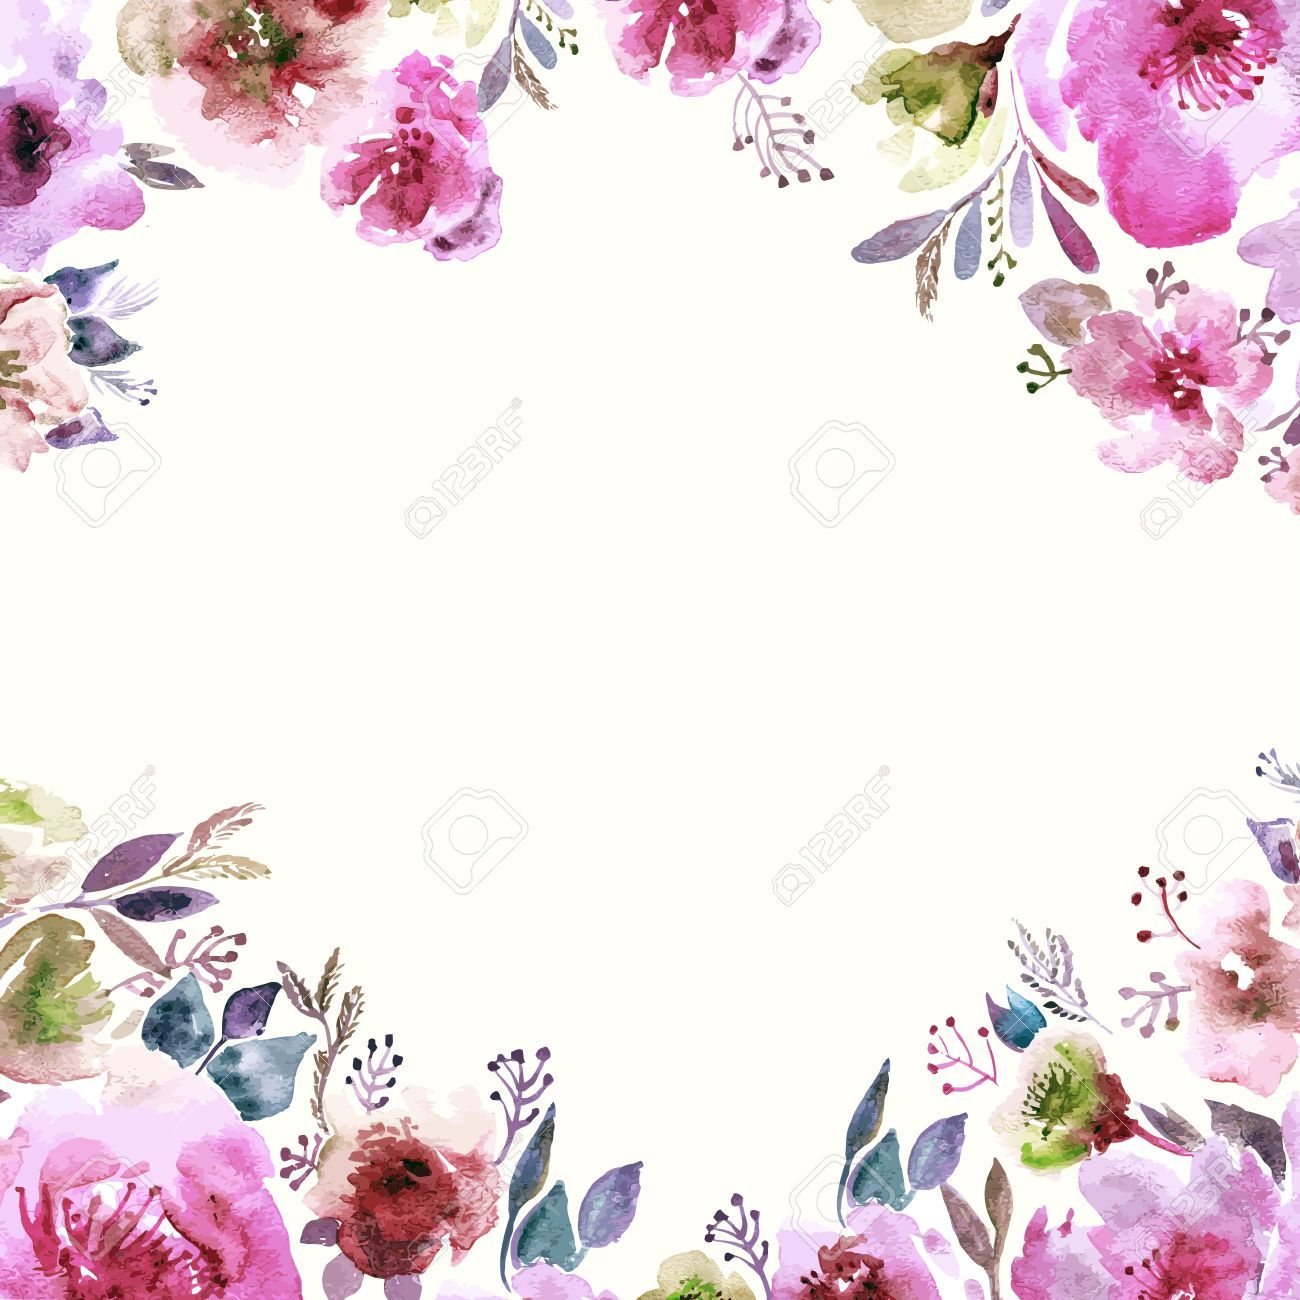 34095950-Floral-background-Watercolor-floral-bouquet-Birthday-card-Floral-decorative-frame--Stock-Vector.jpg (1300×1300)